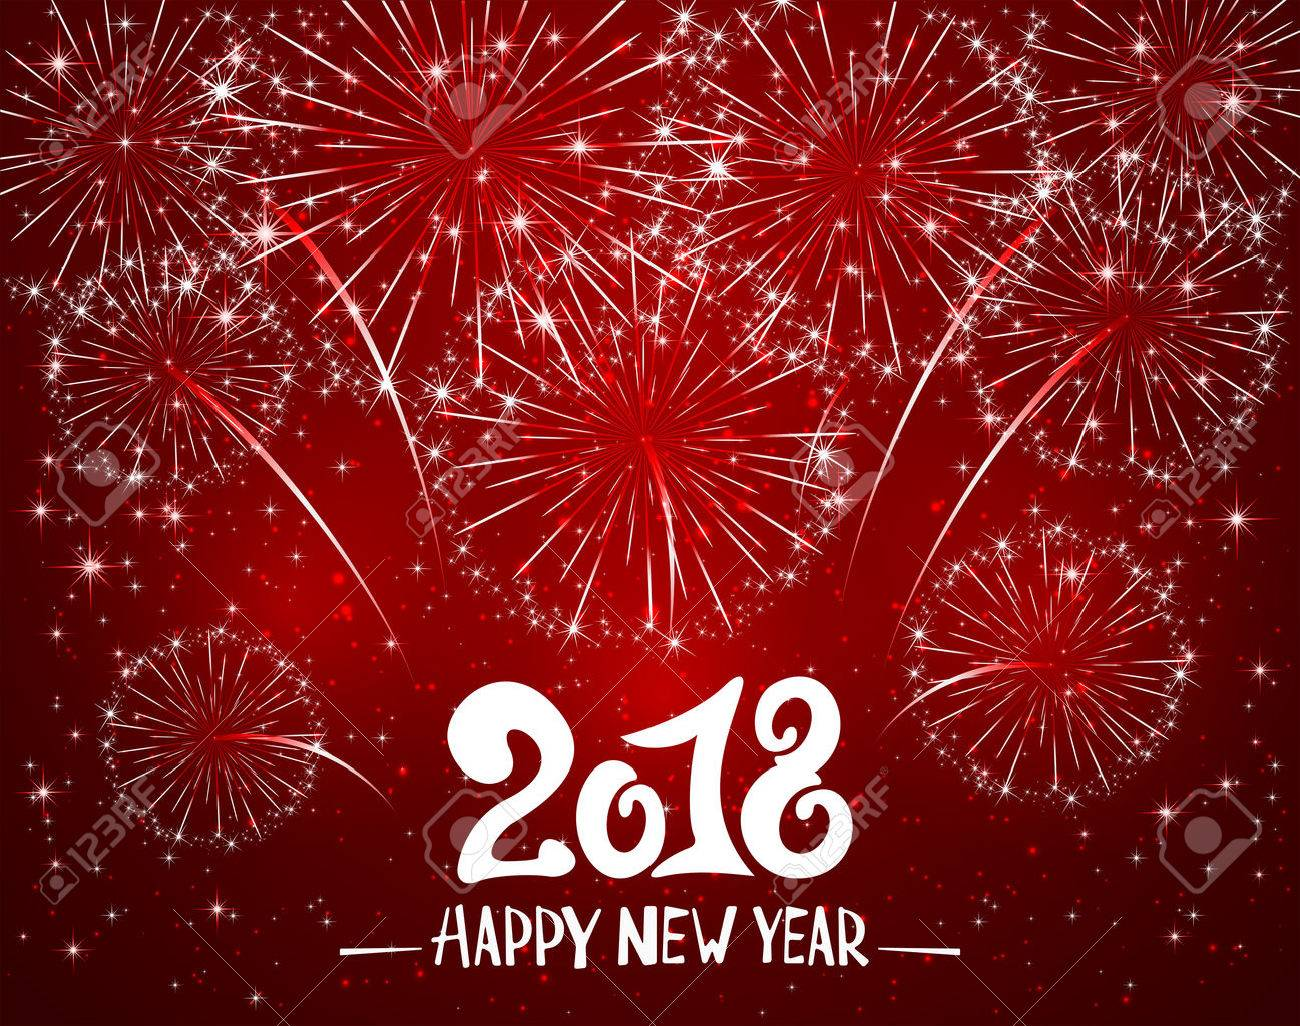 lettering happy new year 2018 and sparkling fireworks on red shiny background holiday greeting